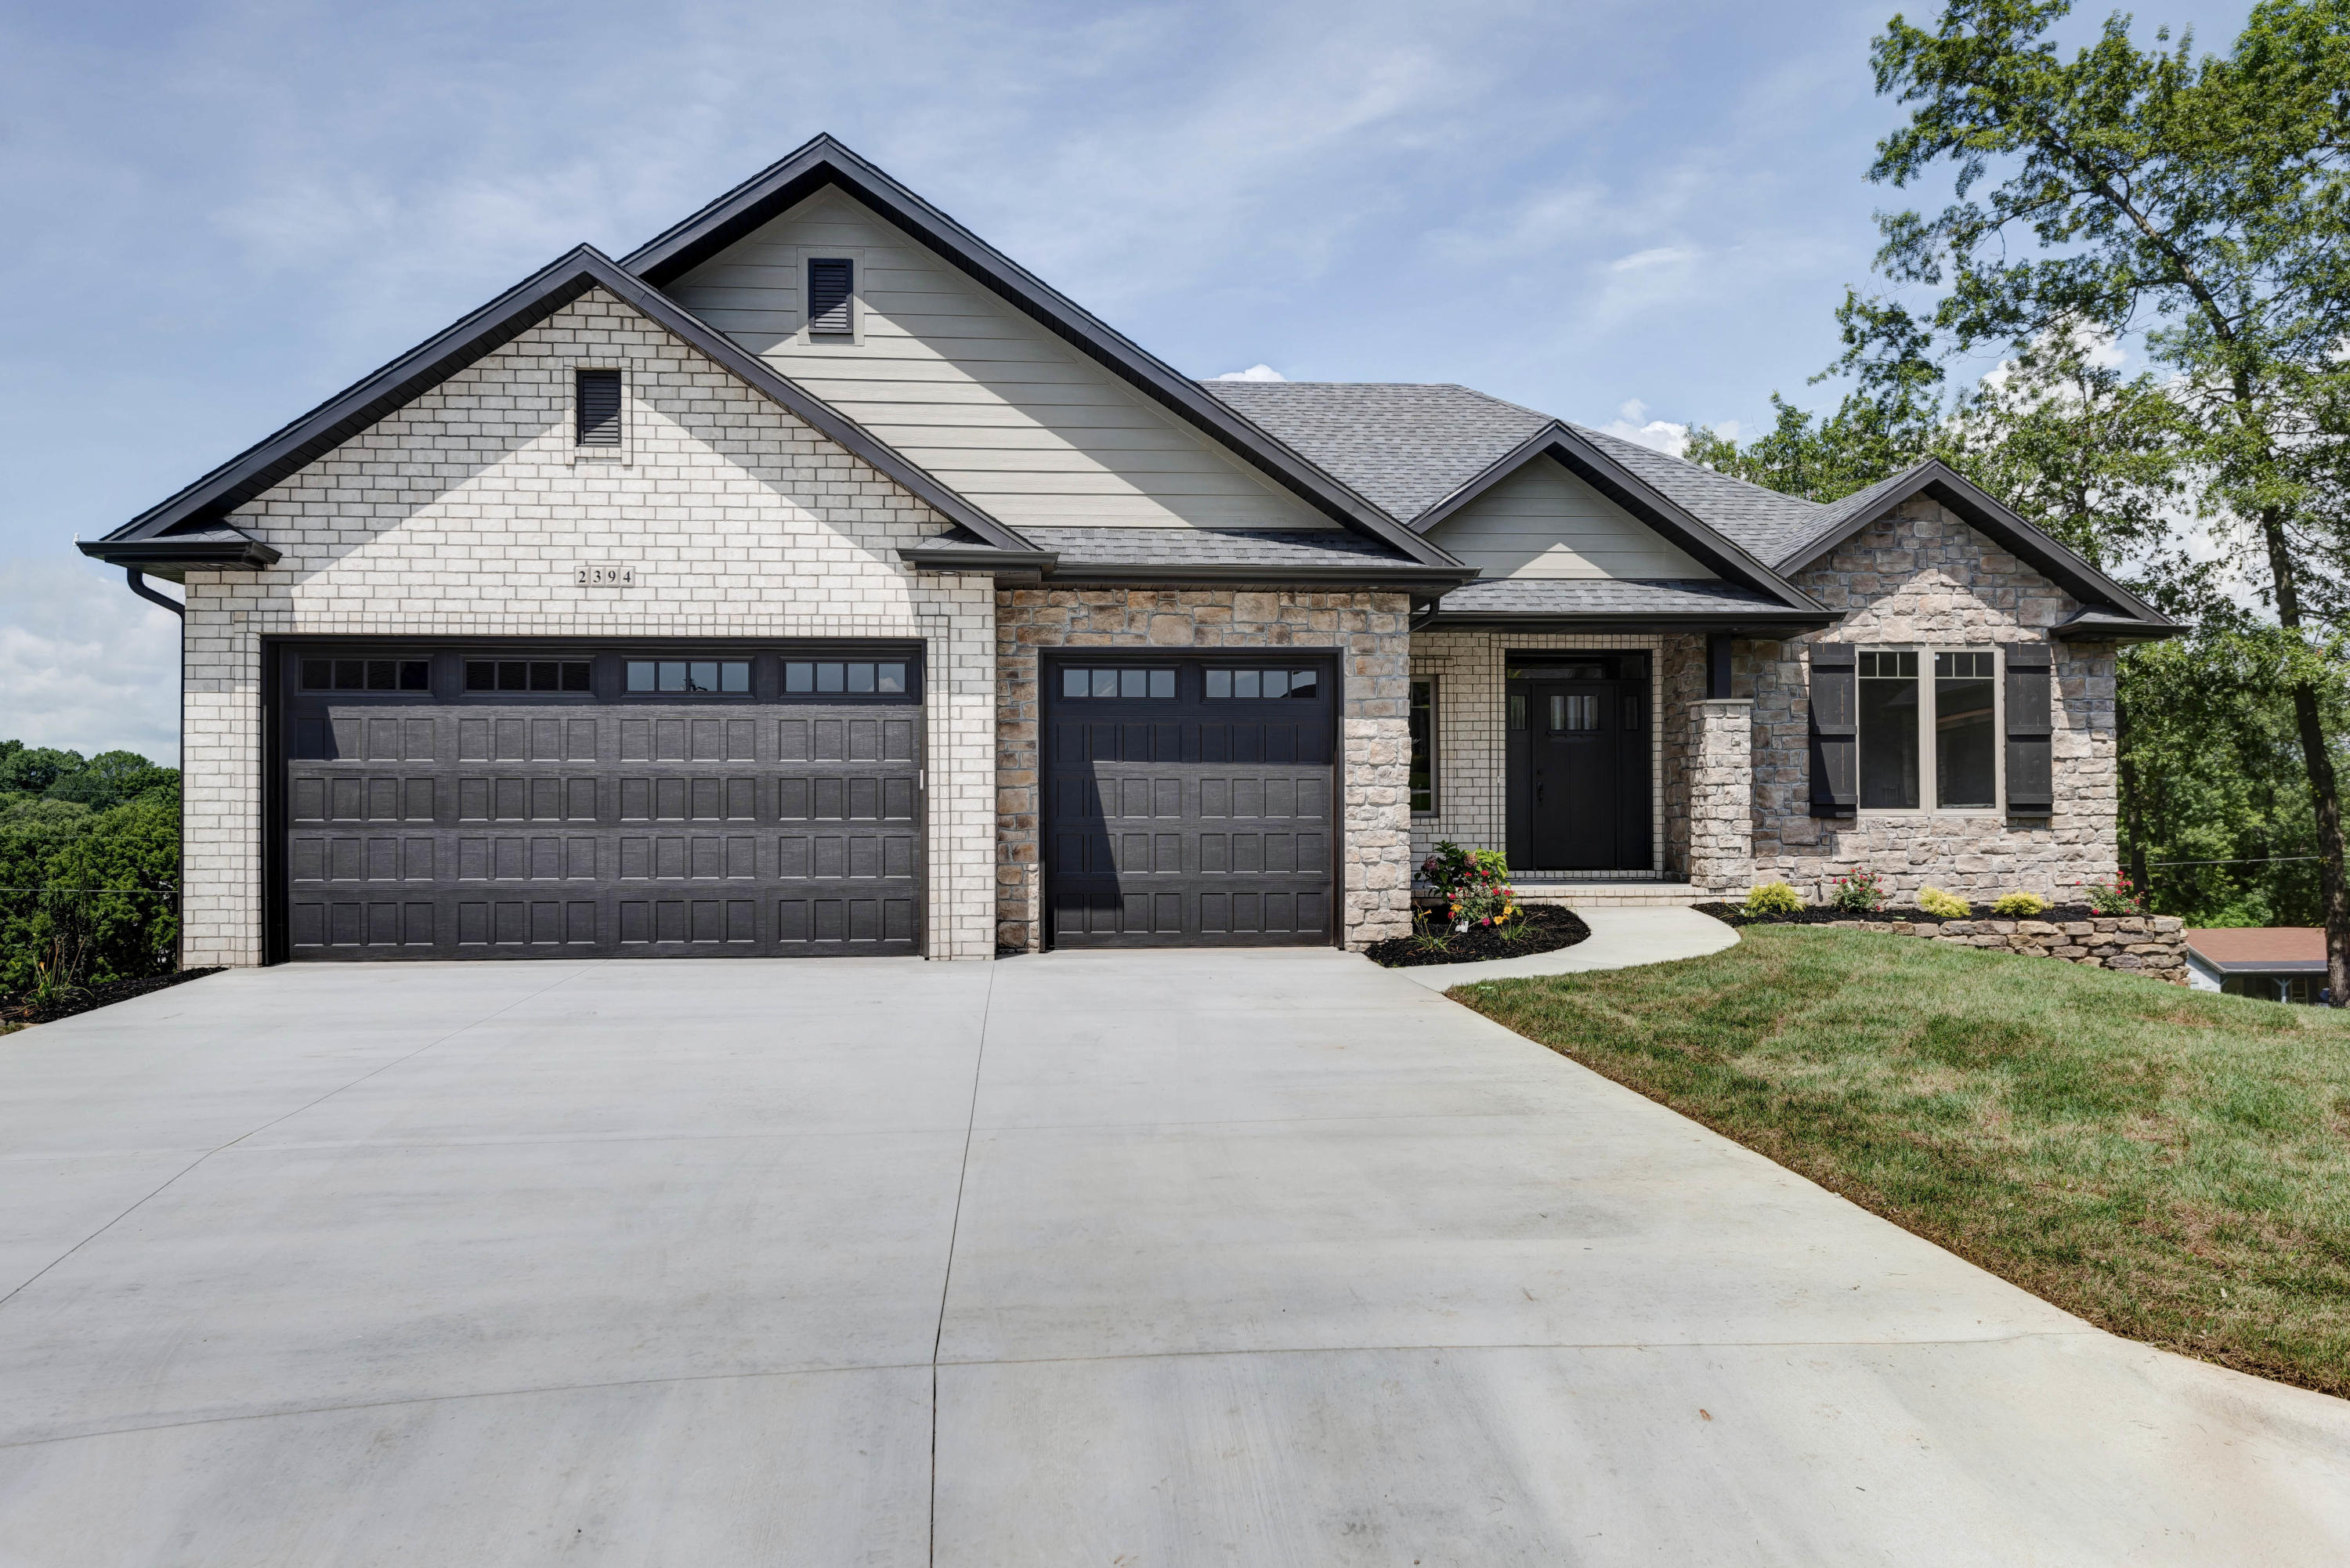 2394 West Darby Street Springfield, MO 65810